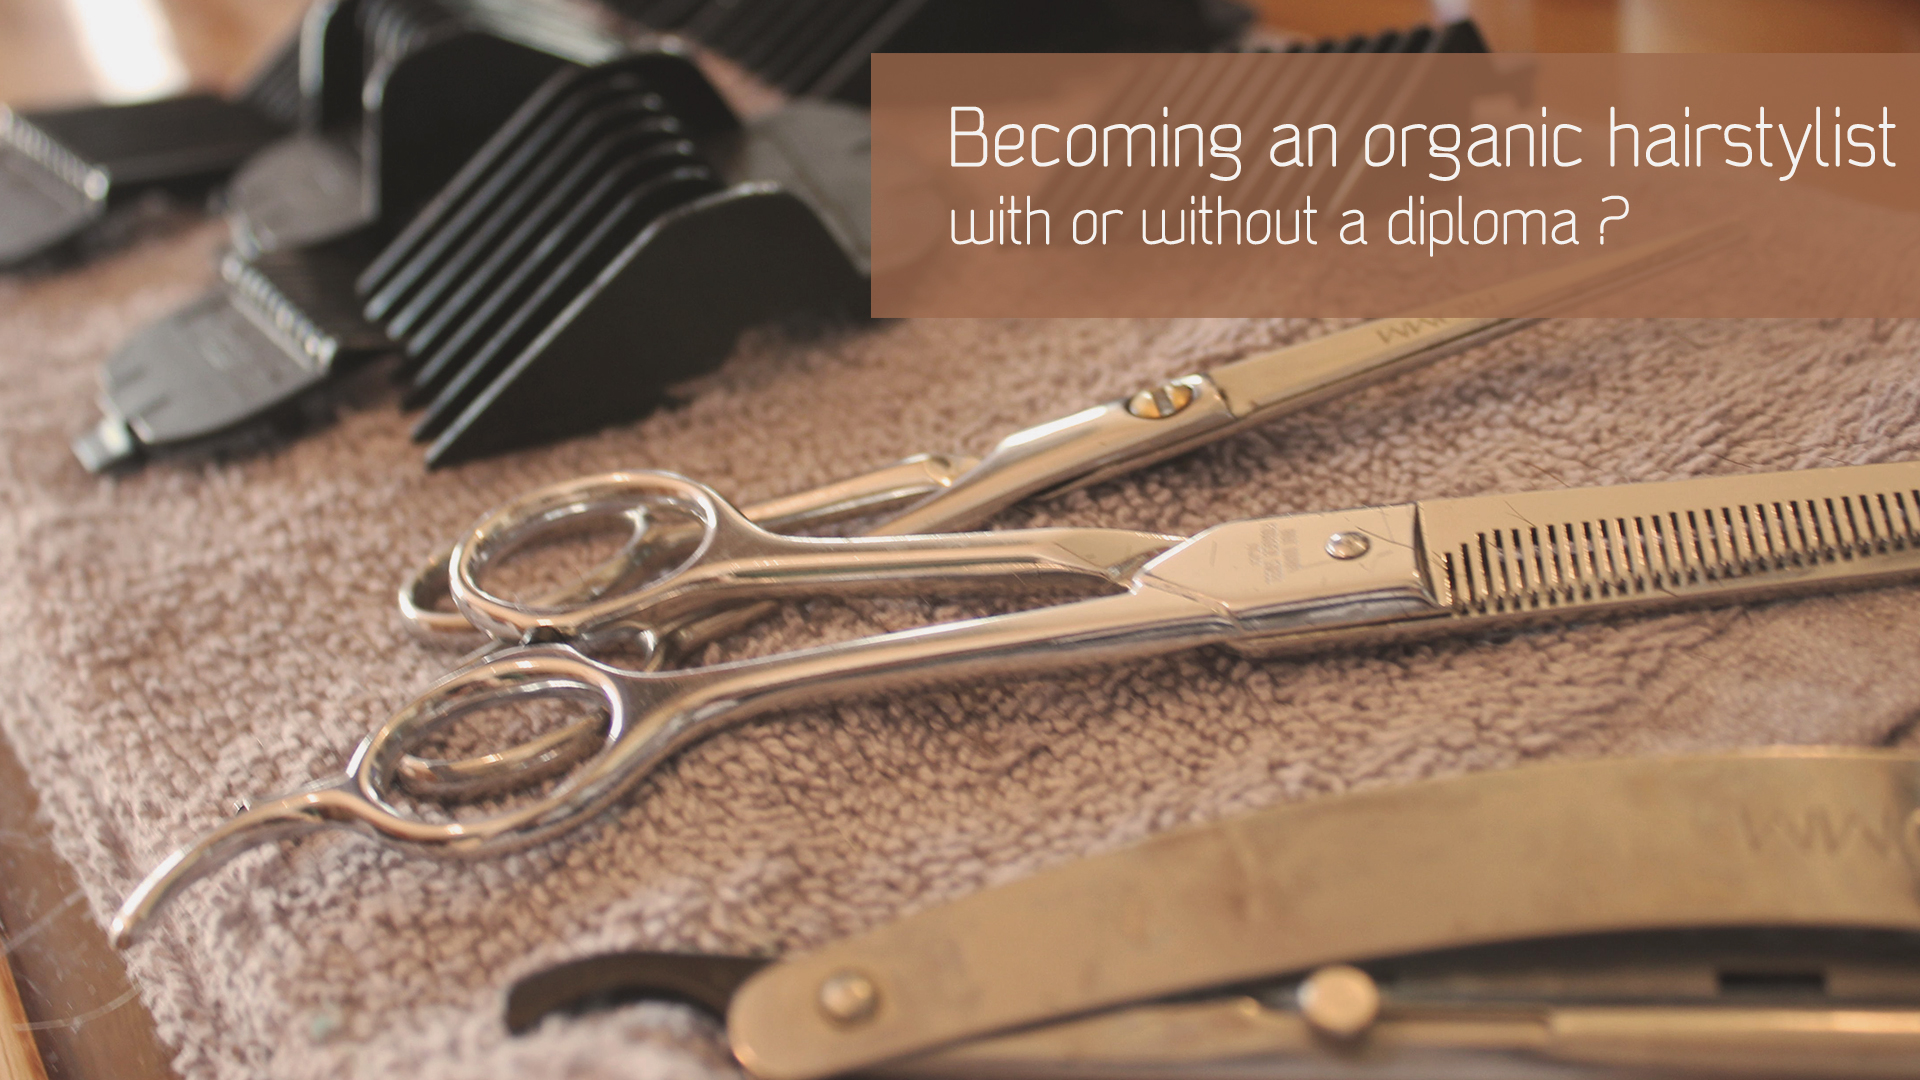 Do you need a diploma to be an organic hairstylist?